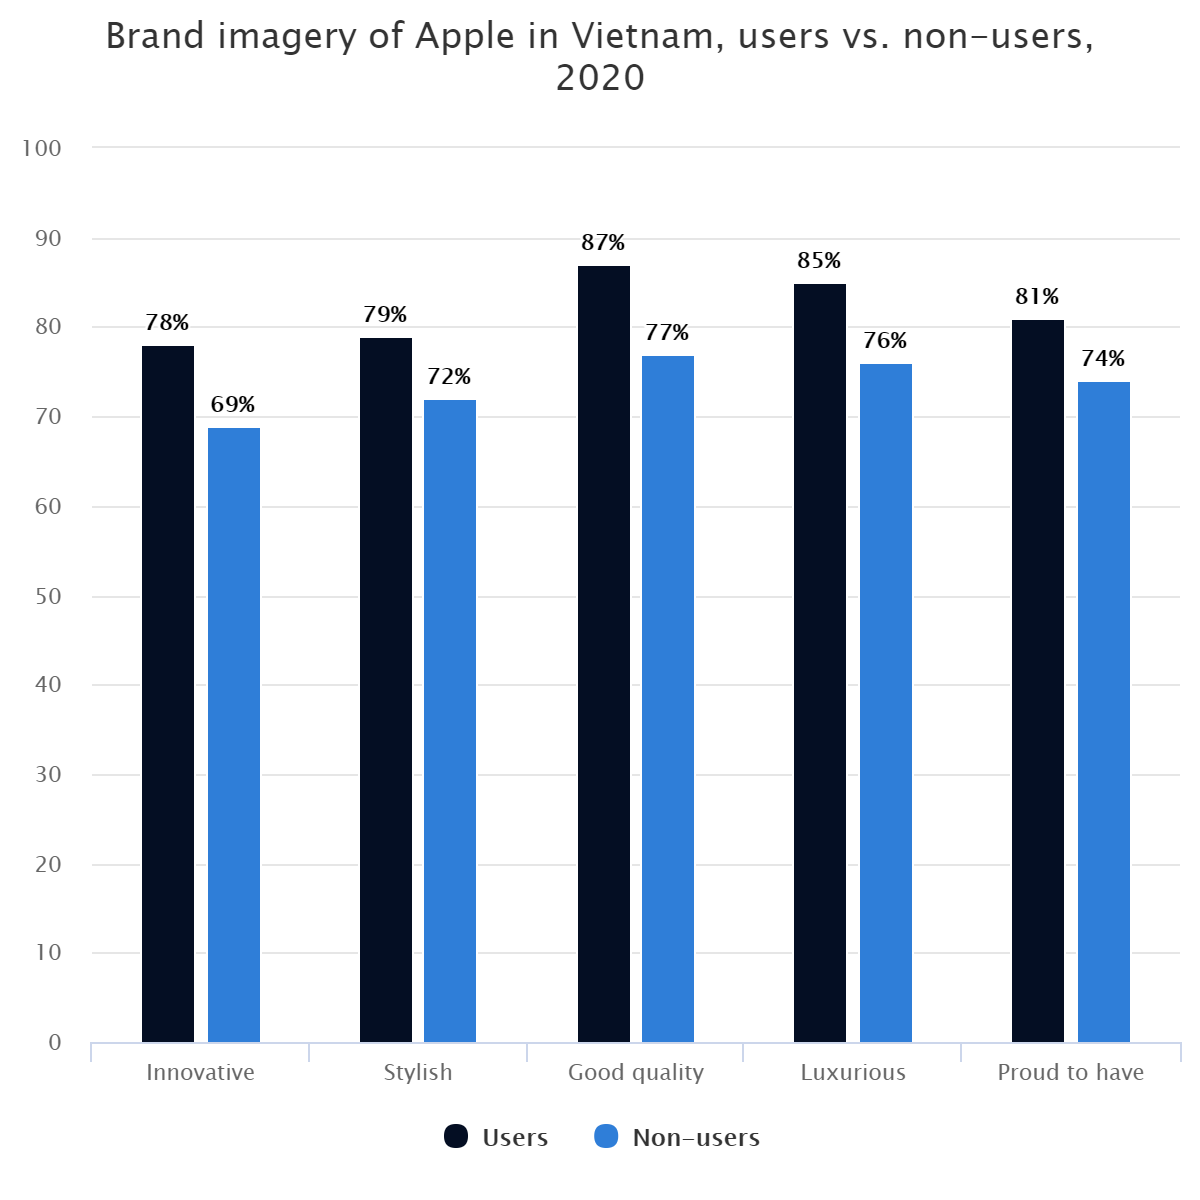 Brand imagery of Apple in Vietnam, users vs. non-users, 2020